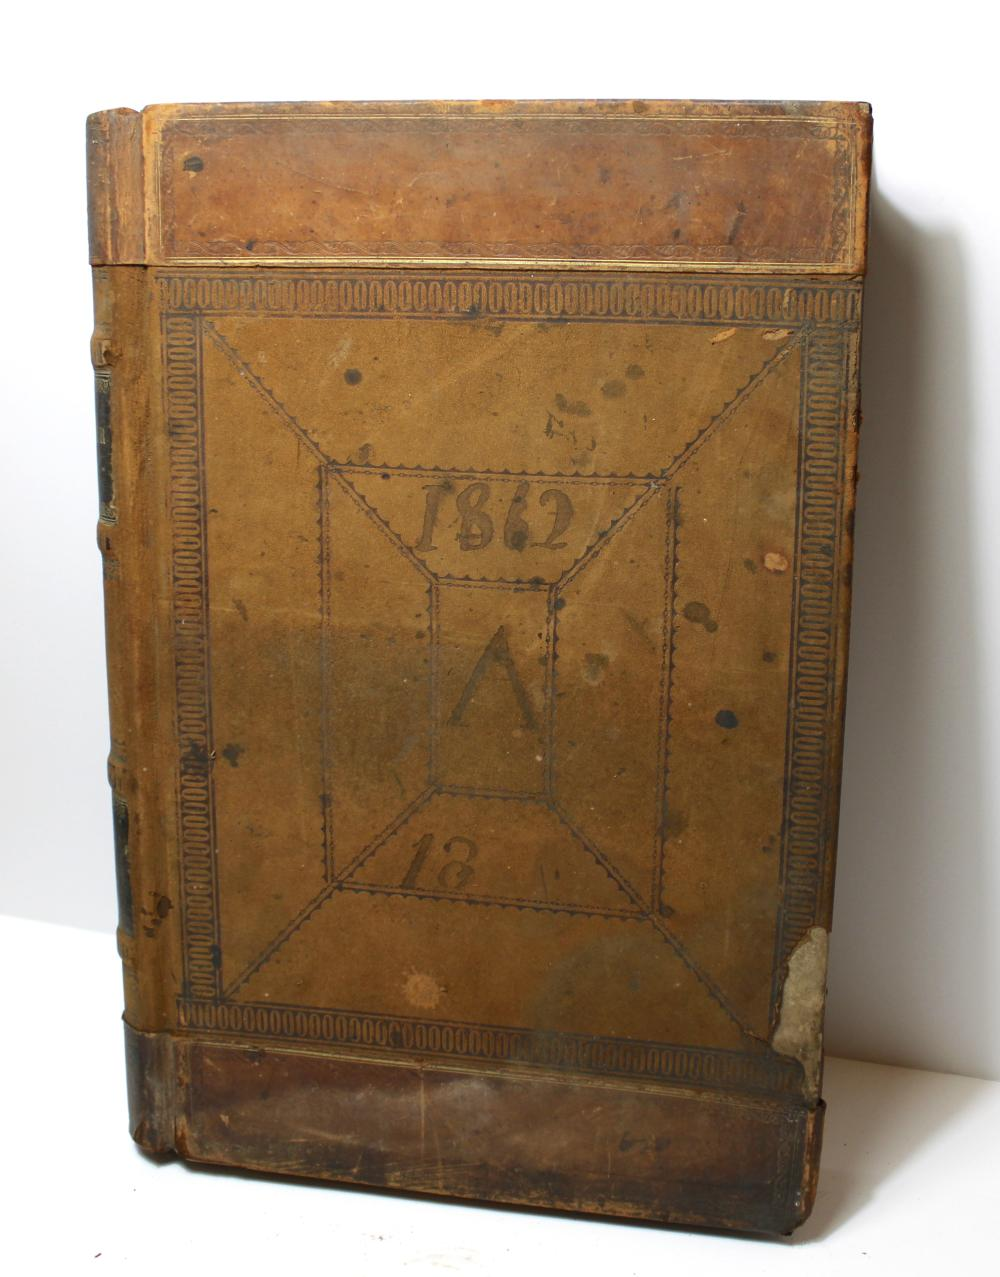 Tennessee Confederate Store Ledger- Incredible Record